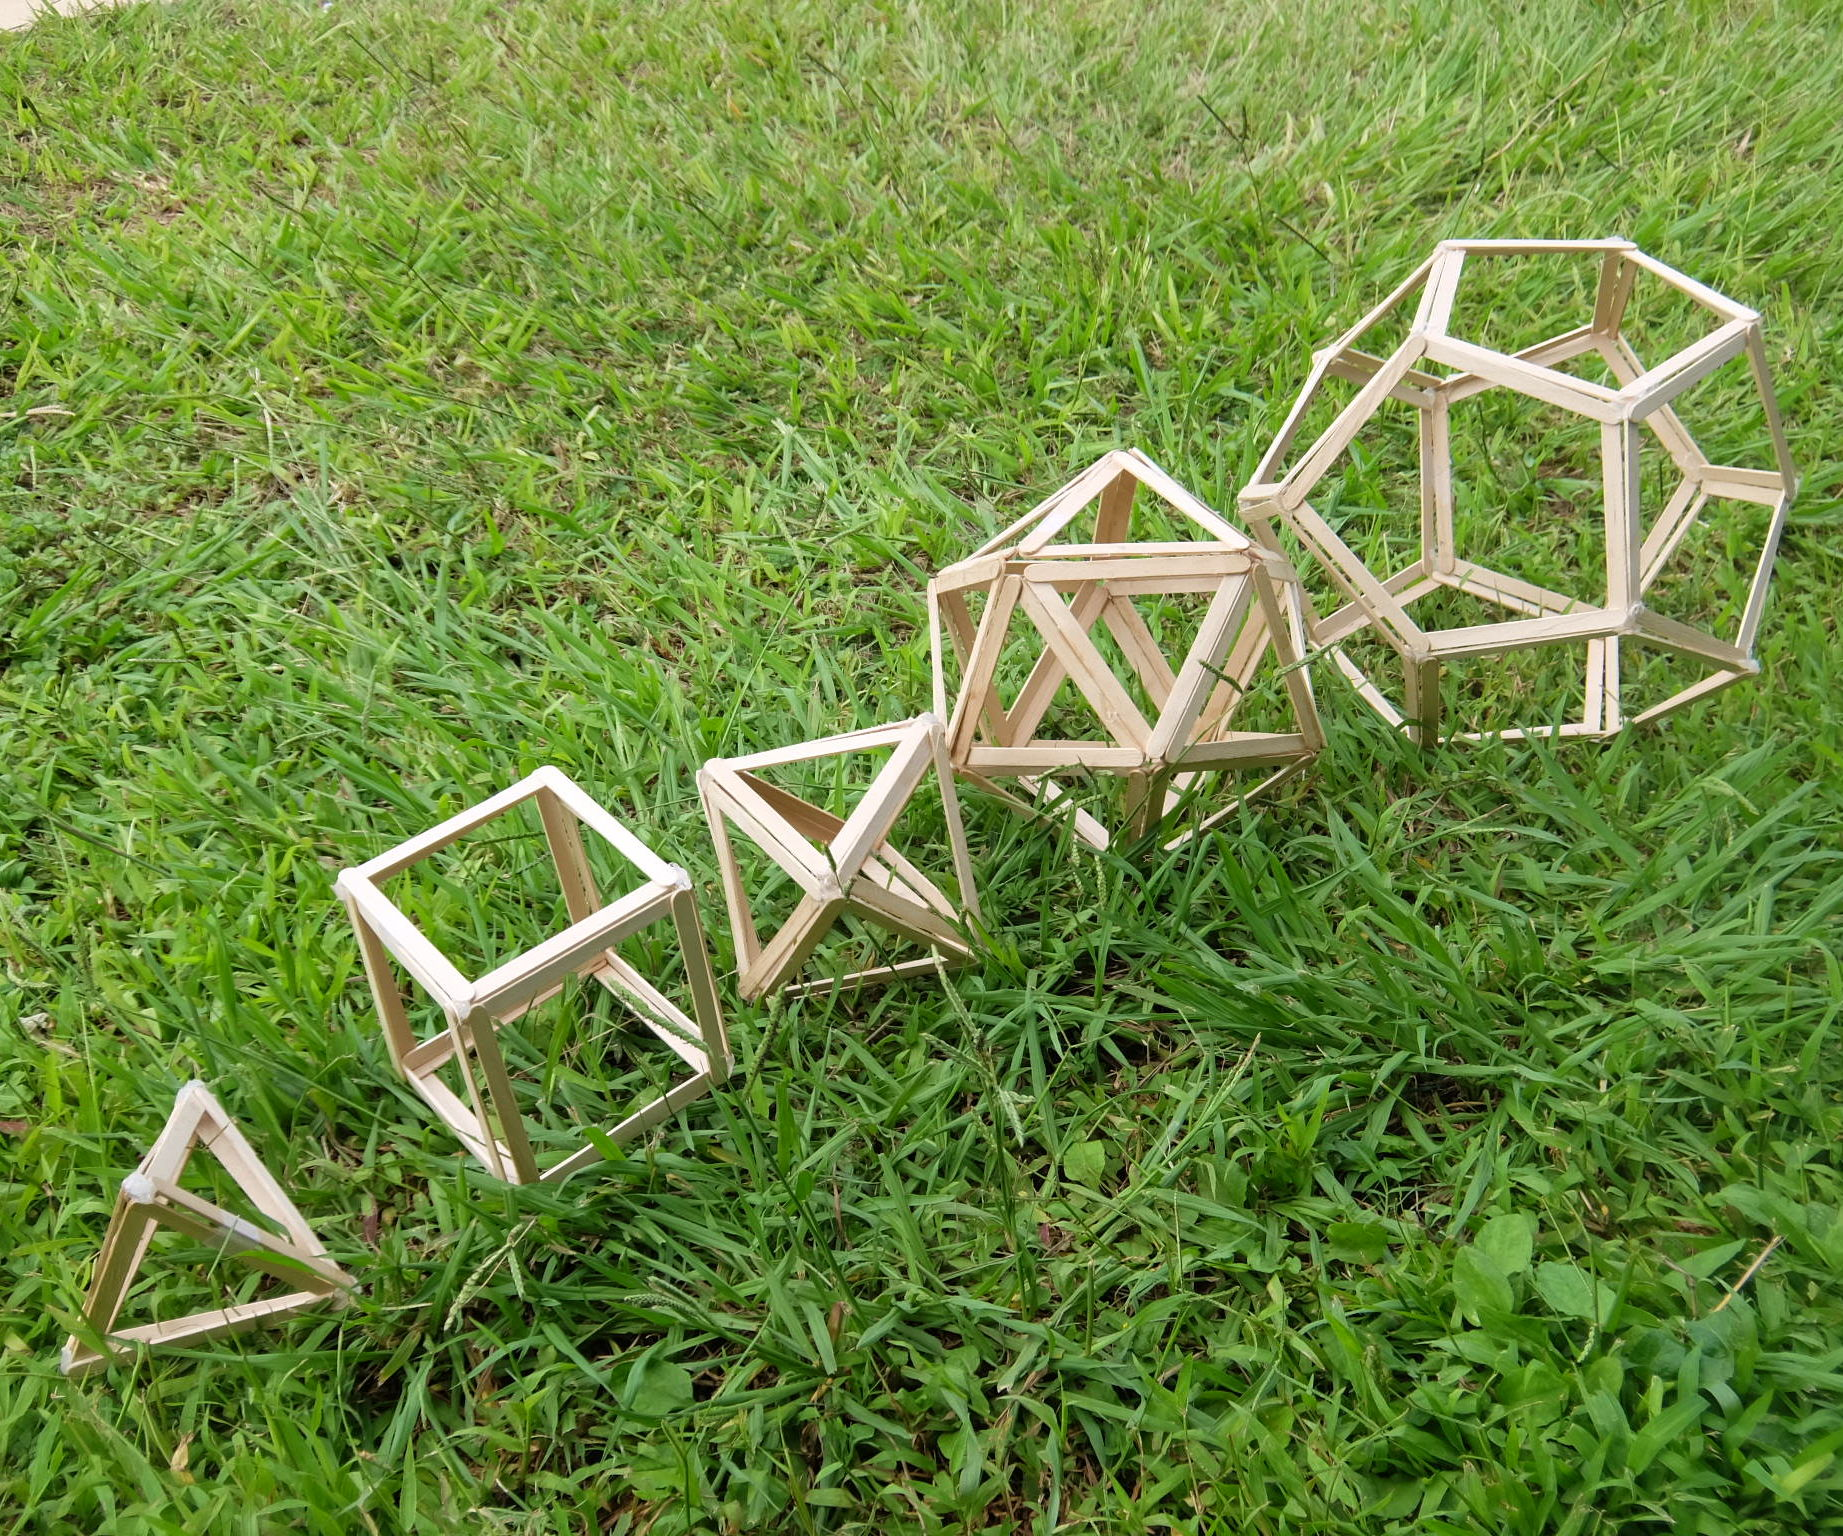 5 Platonic Solids Popsicle Sticks Models DIY